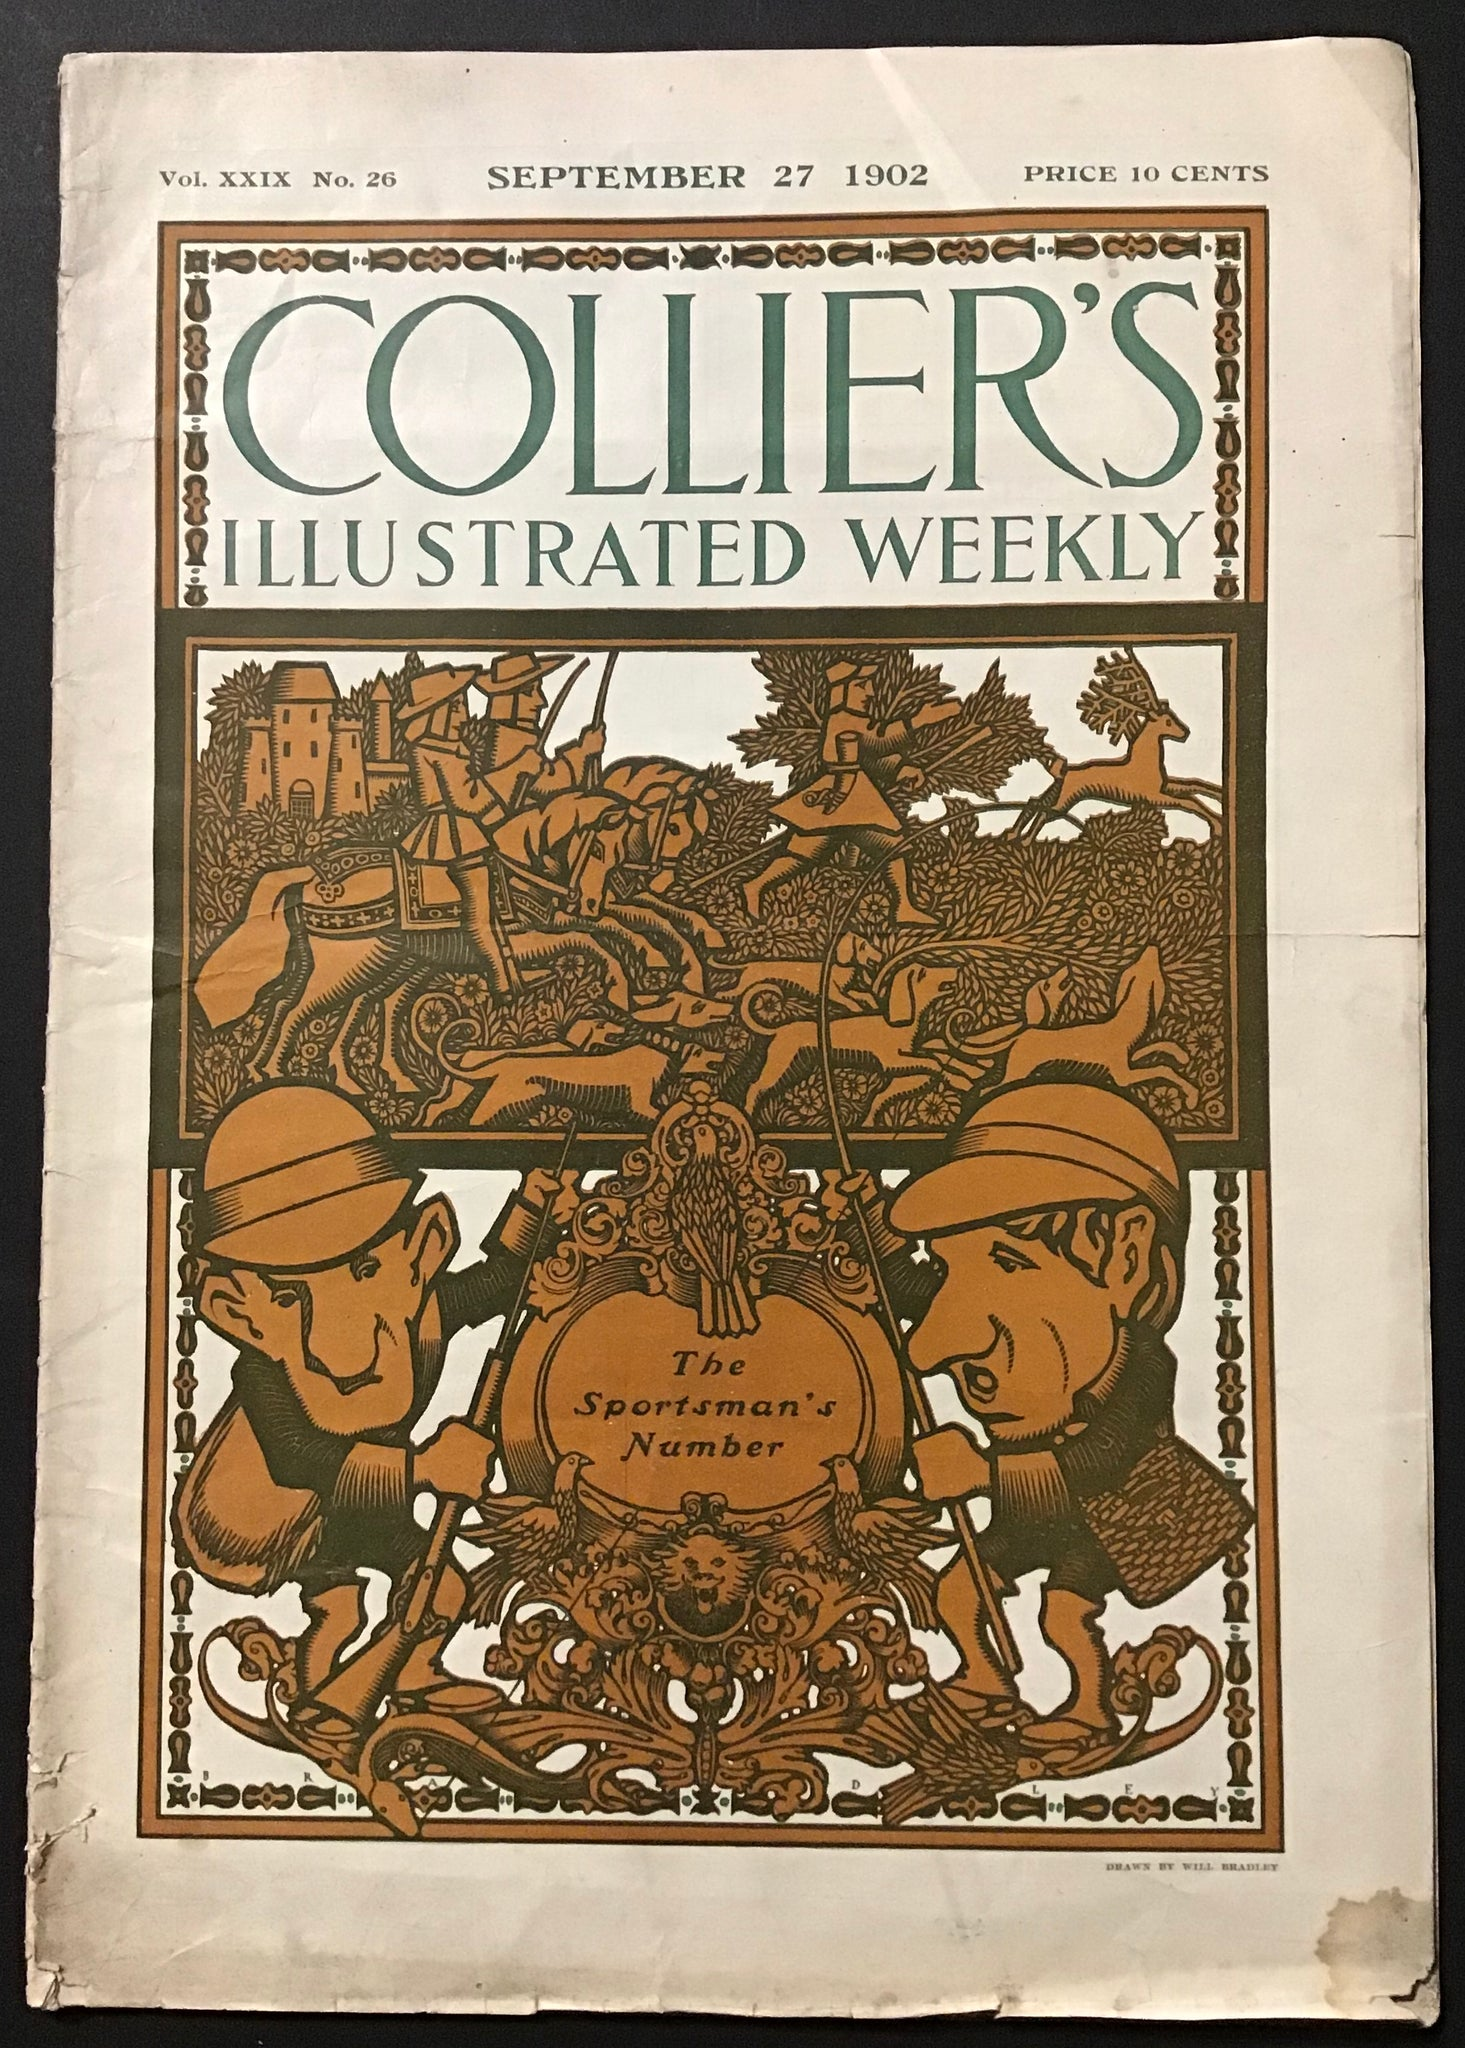 Collier's Illustrated Weekly - Sept. 27, 1902